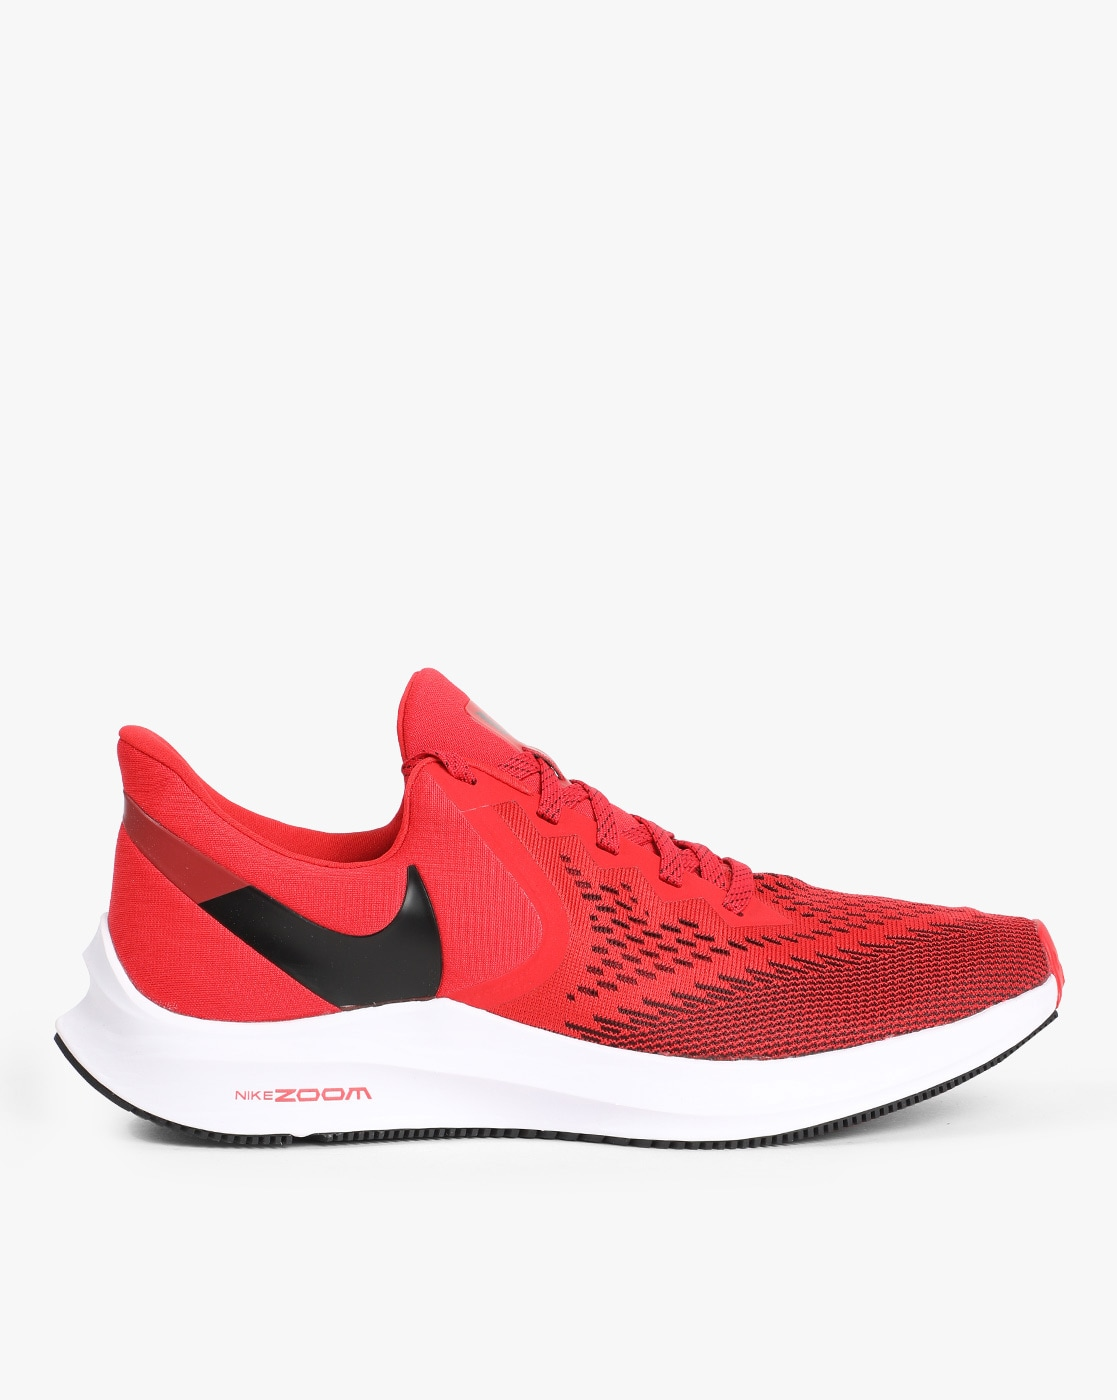 nike zoom red shoes off 64% - www